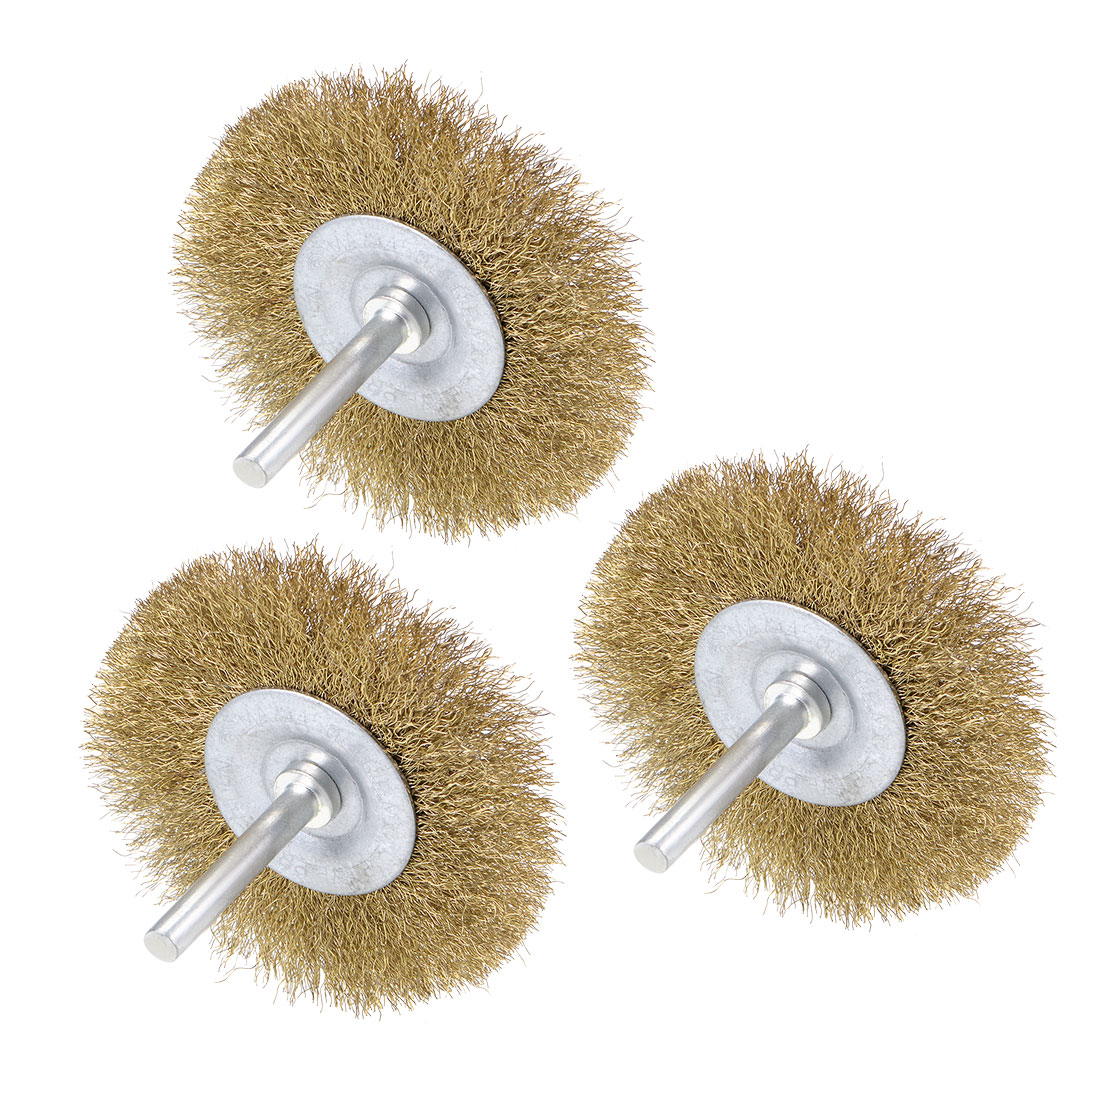 3-Inch Wire Wheel Brush Bench Brass Plated Crimped Steel 1/4-Inch Shank 3 Pcs